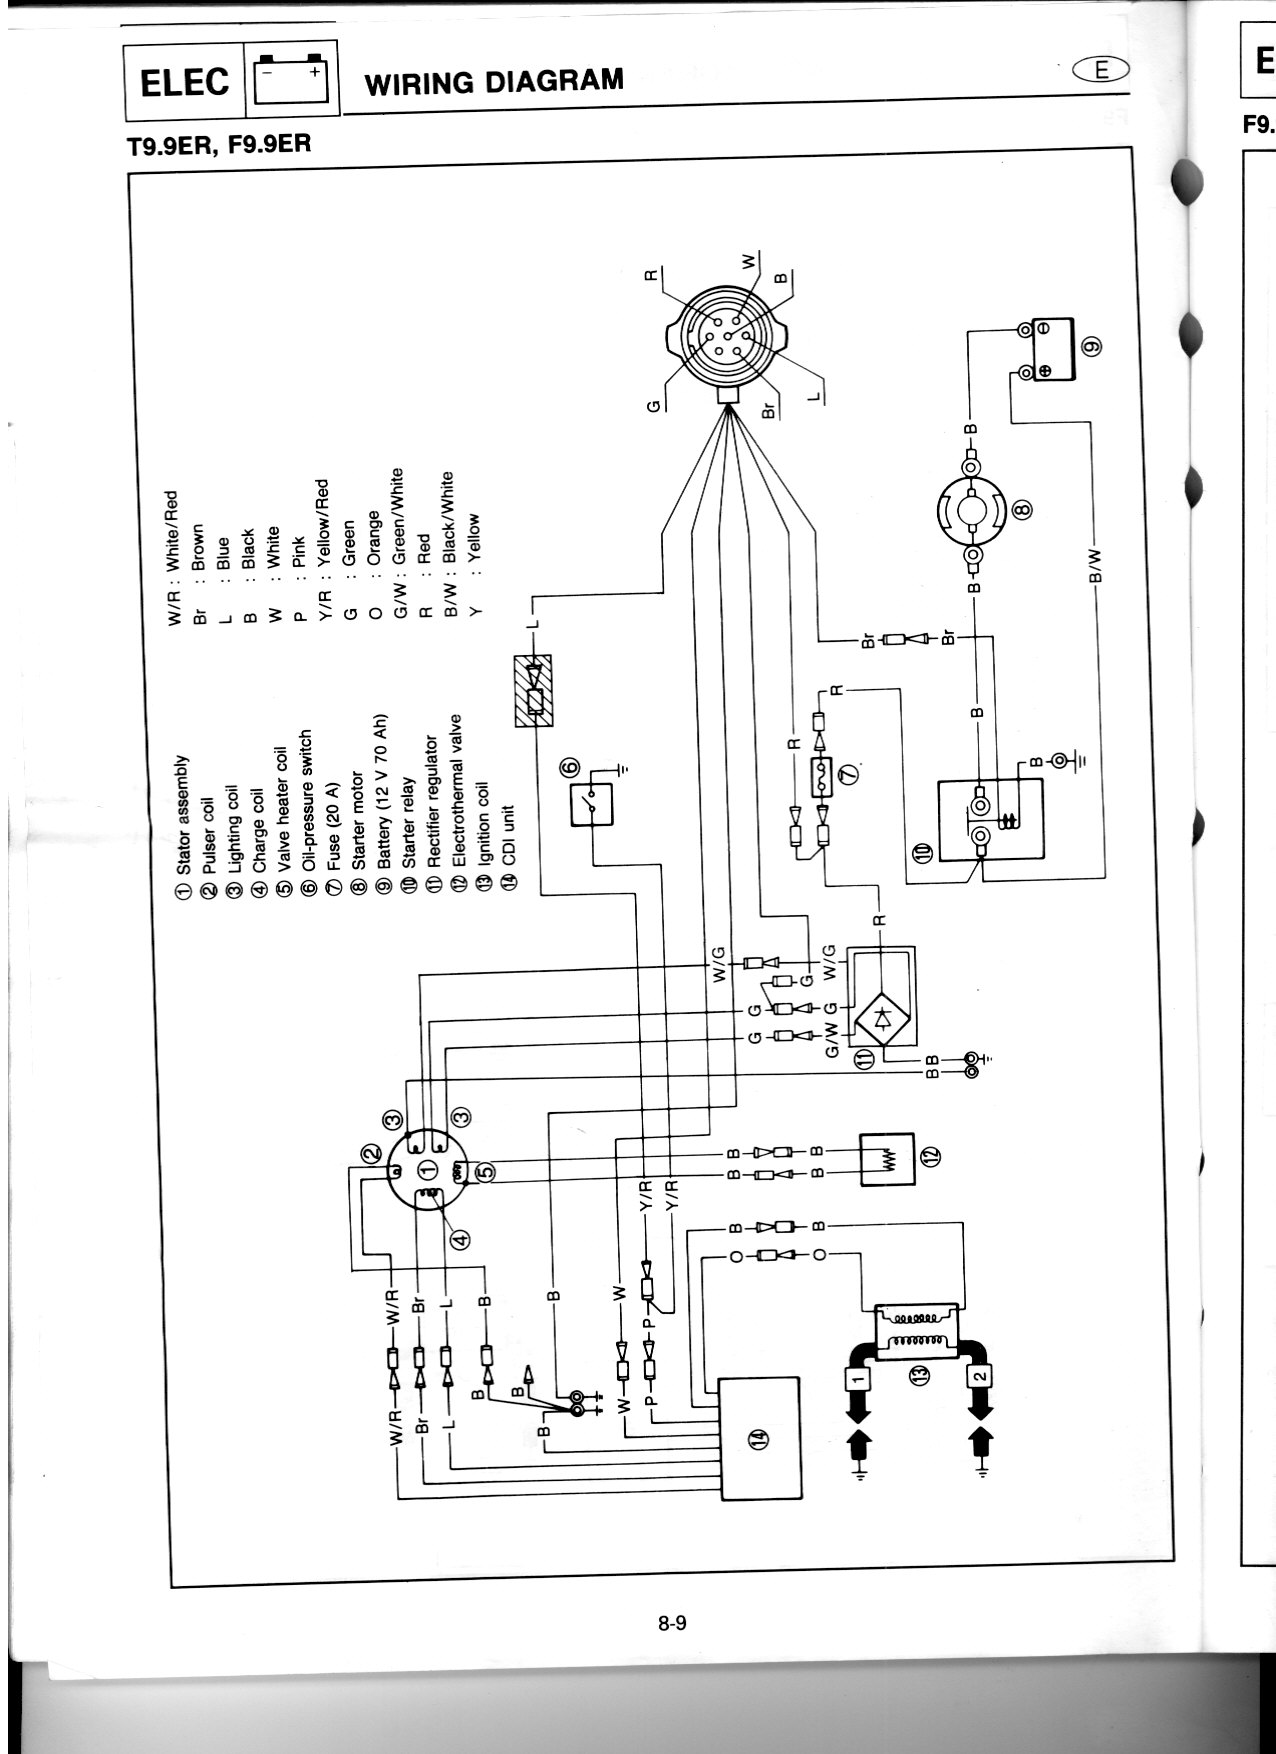 T9.9_Wiring_Diag?resize=665%2C914 yamaha outboard electrical wiring diagram the best wiring yamaha outboards wiring diagrams at fashall.co